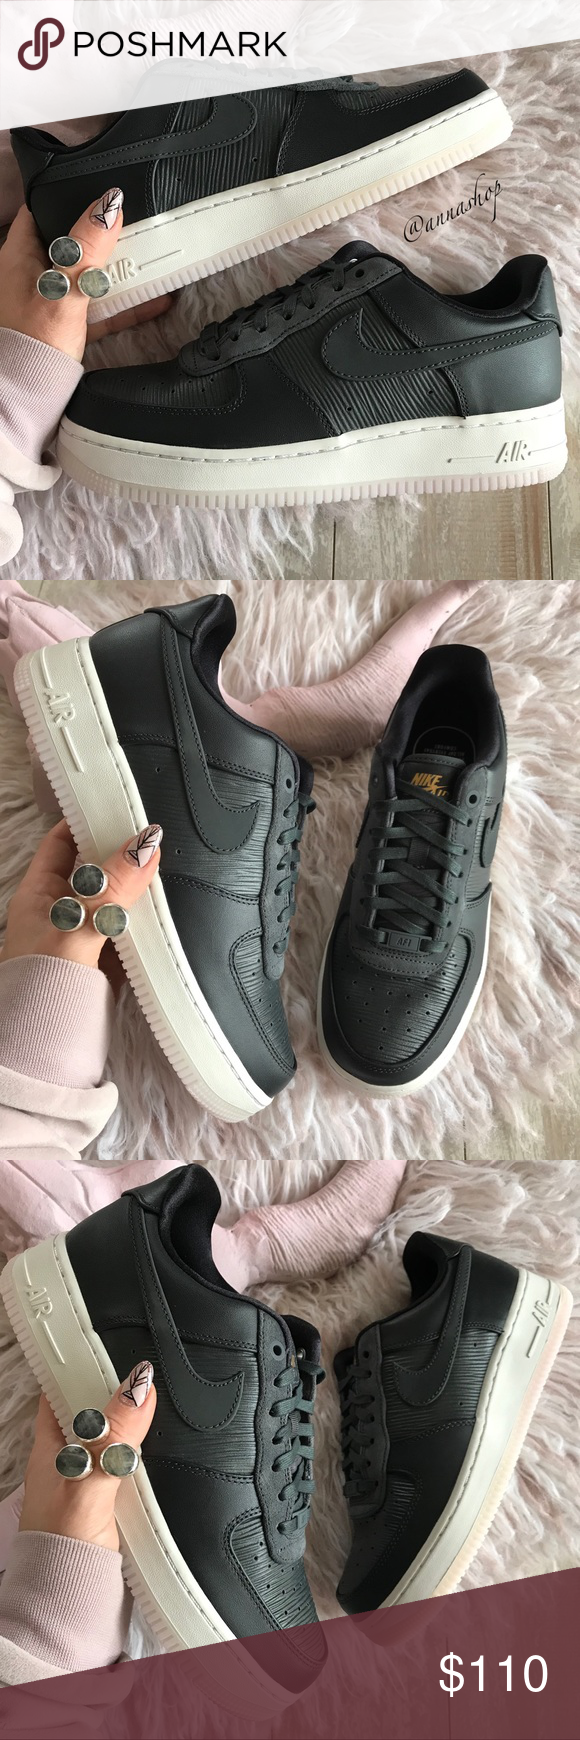 sale retailer e82cc 50af9 NWT Nike Air Force 1 LX Brand new with box no lid, price is firm